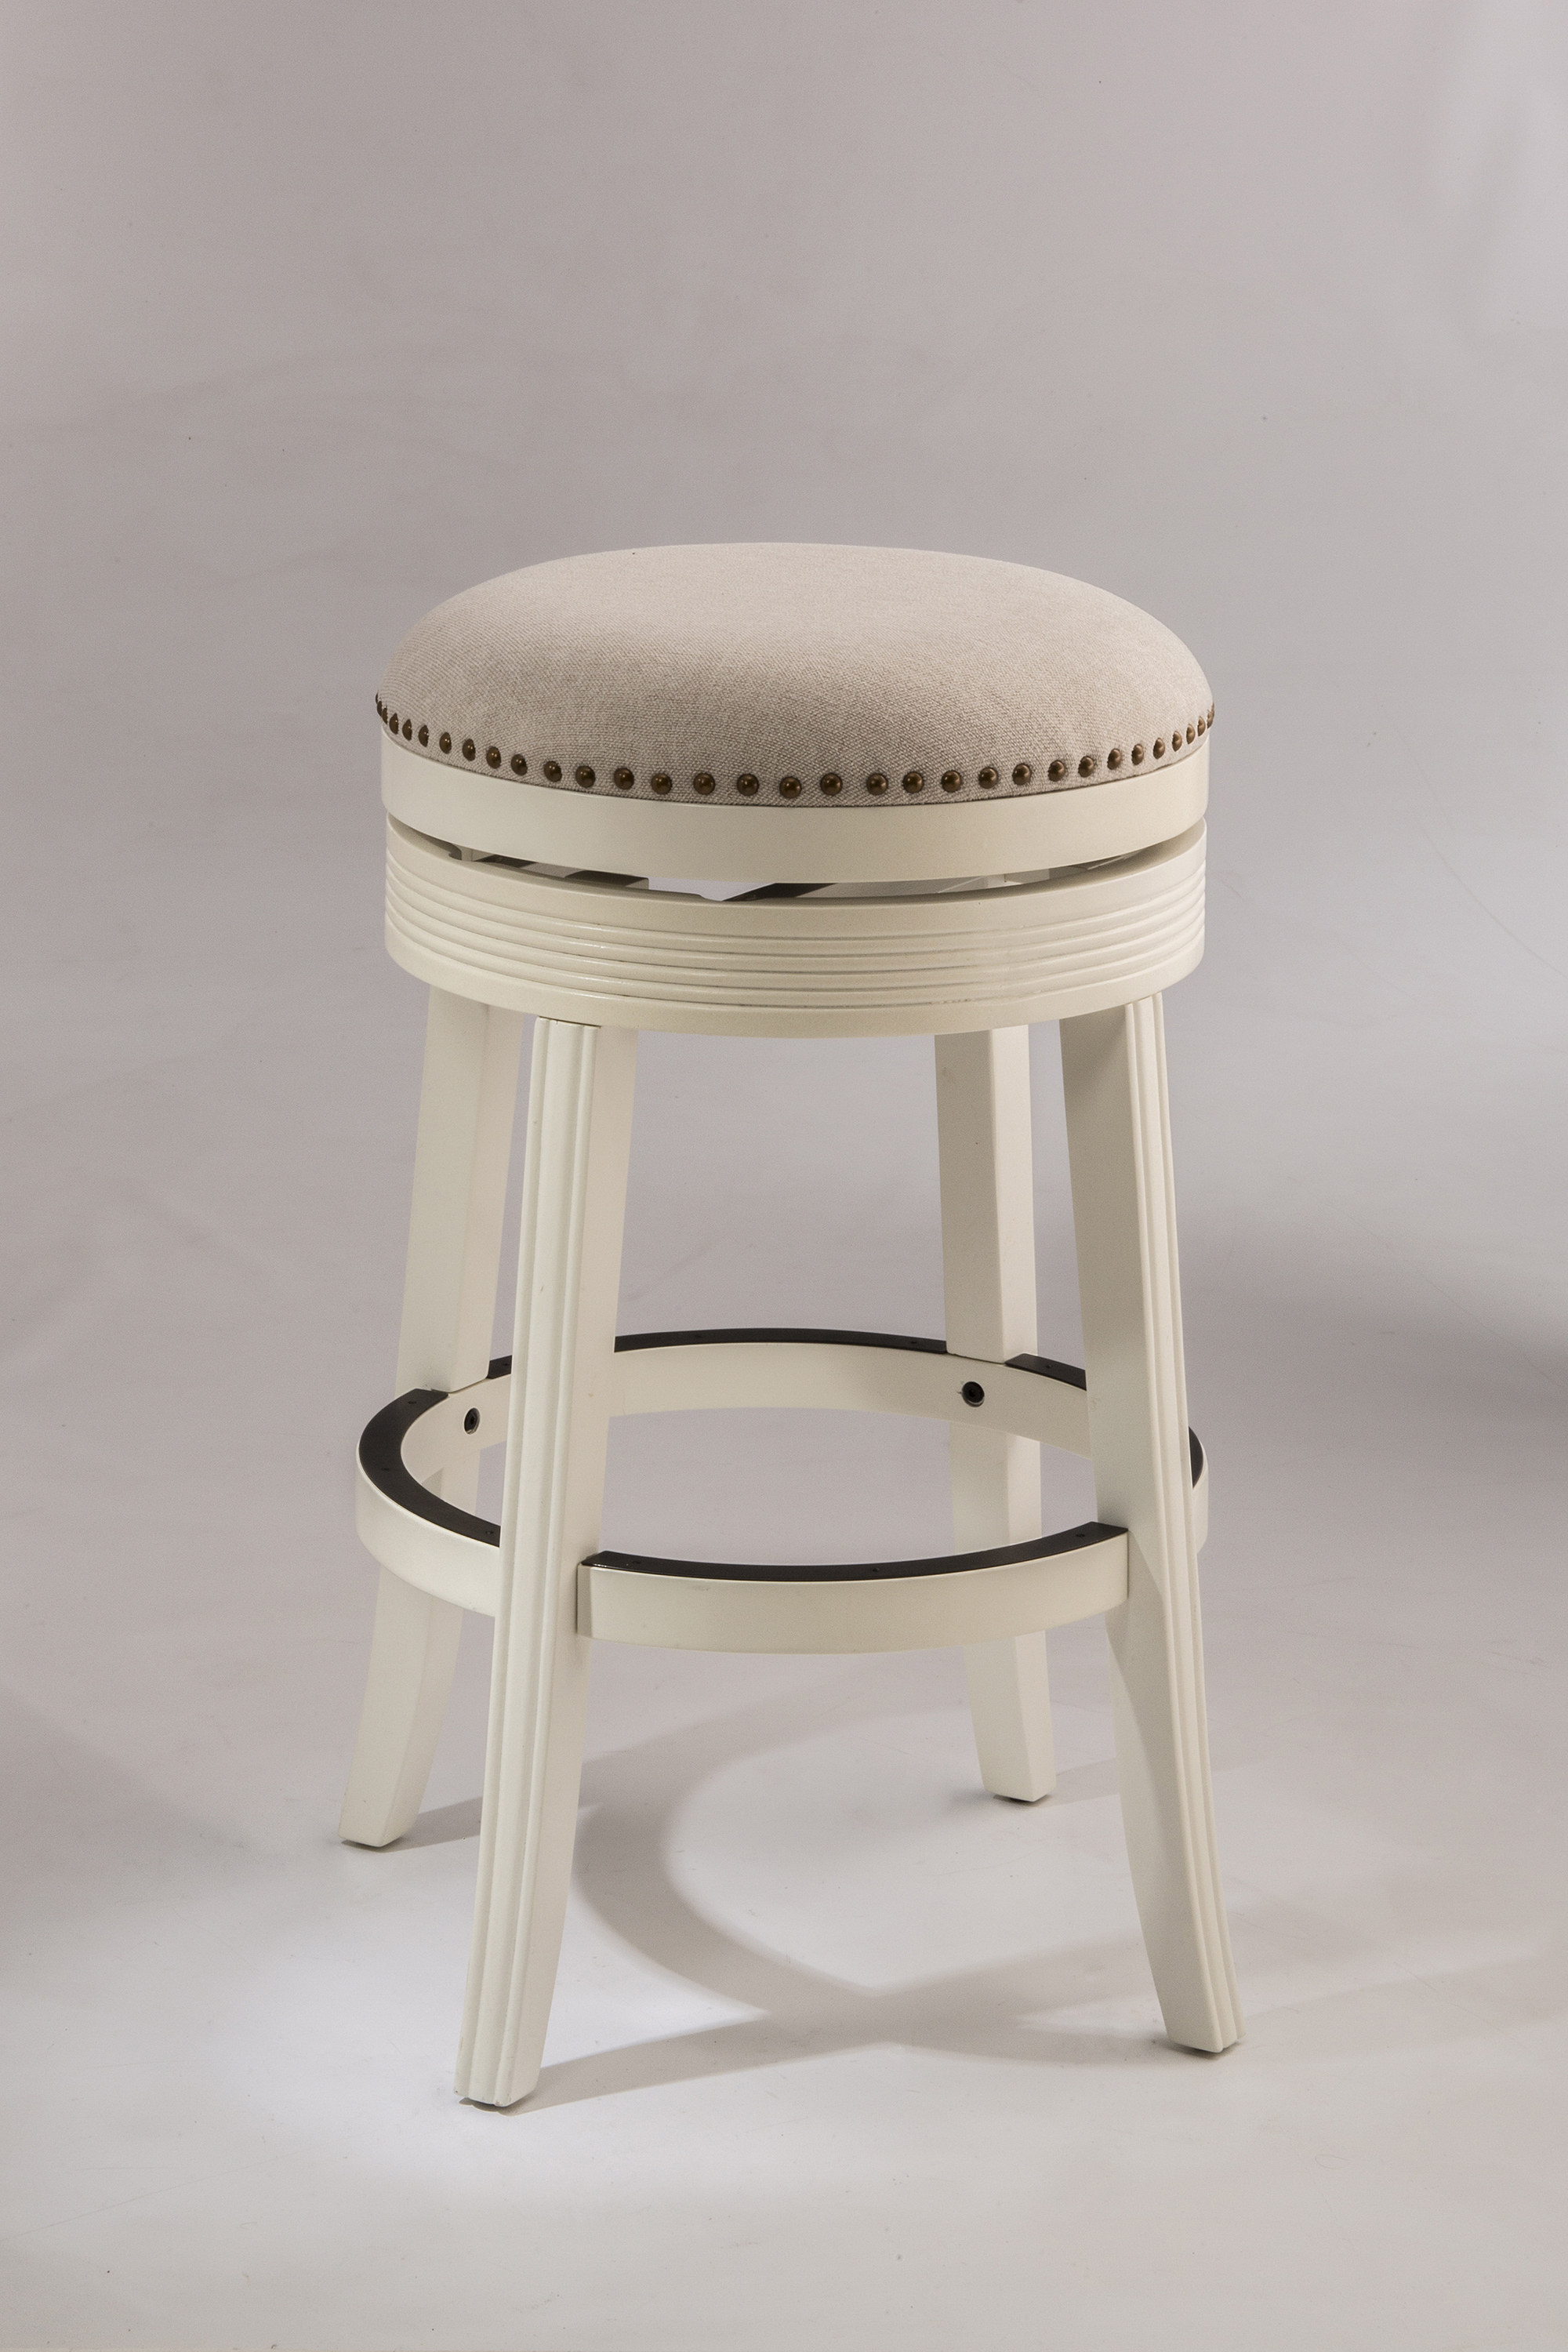 Hillsdale Backless Bar Stools 5688 826a White Backless